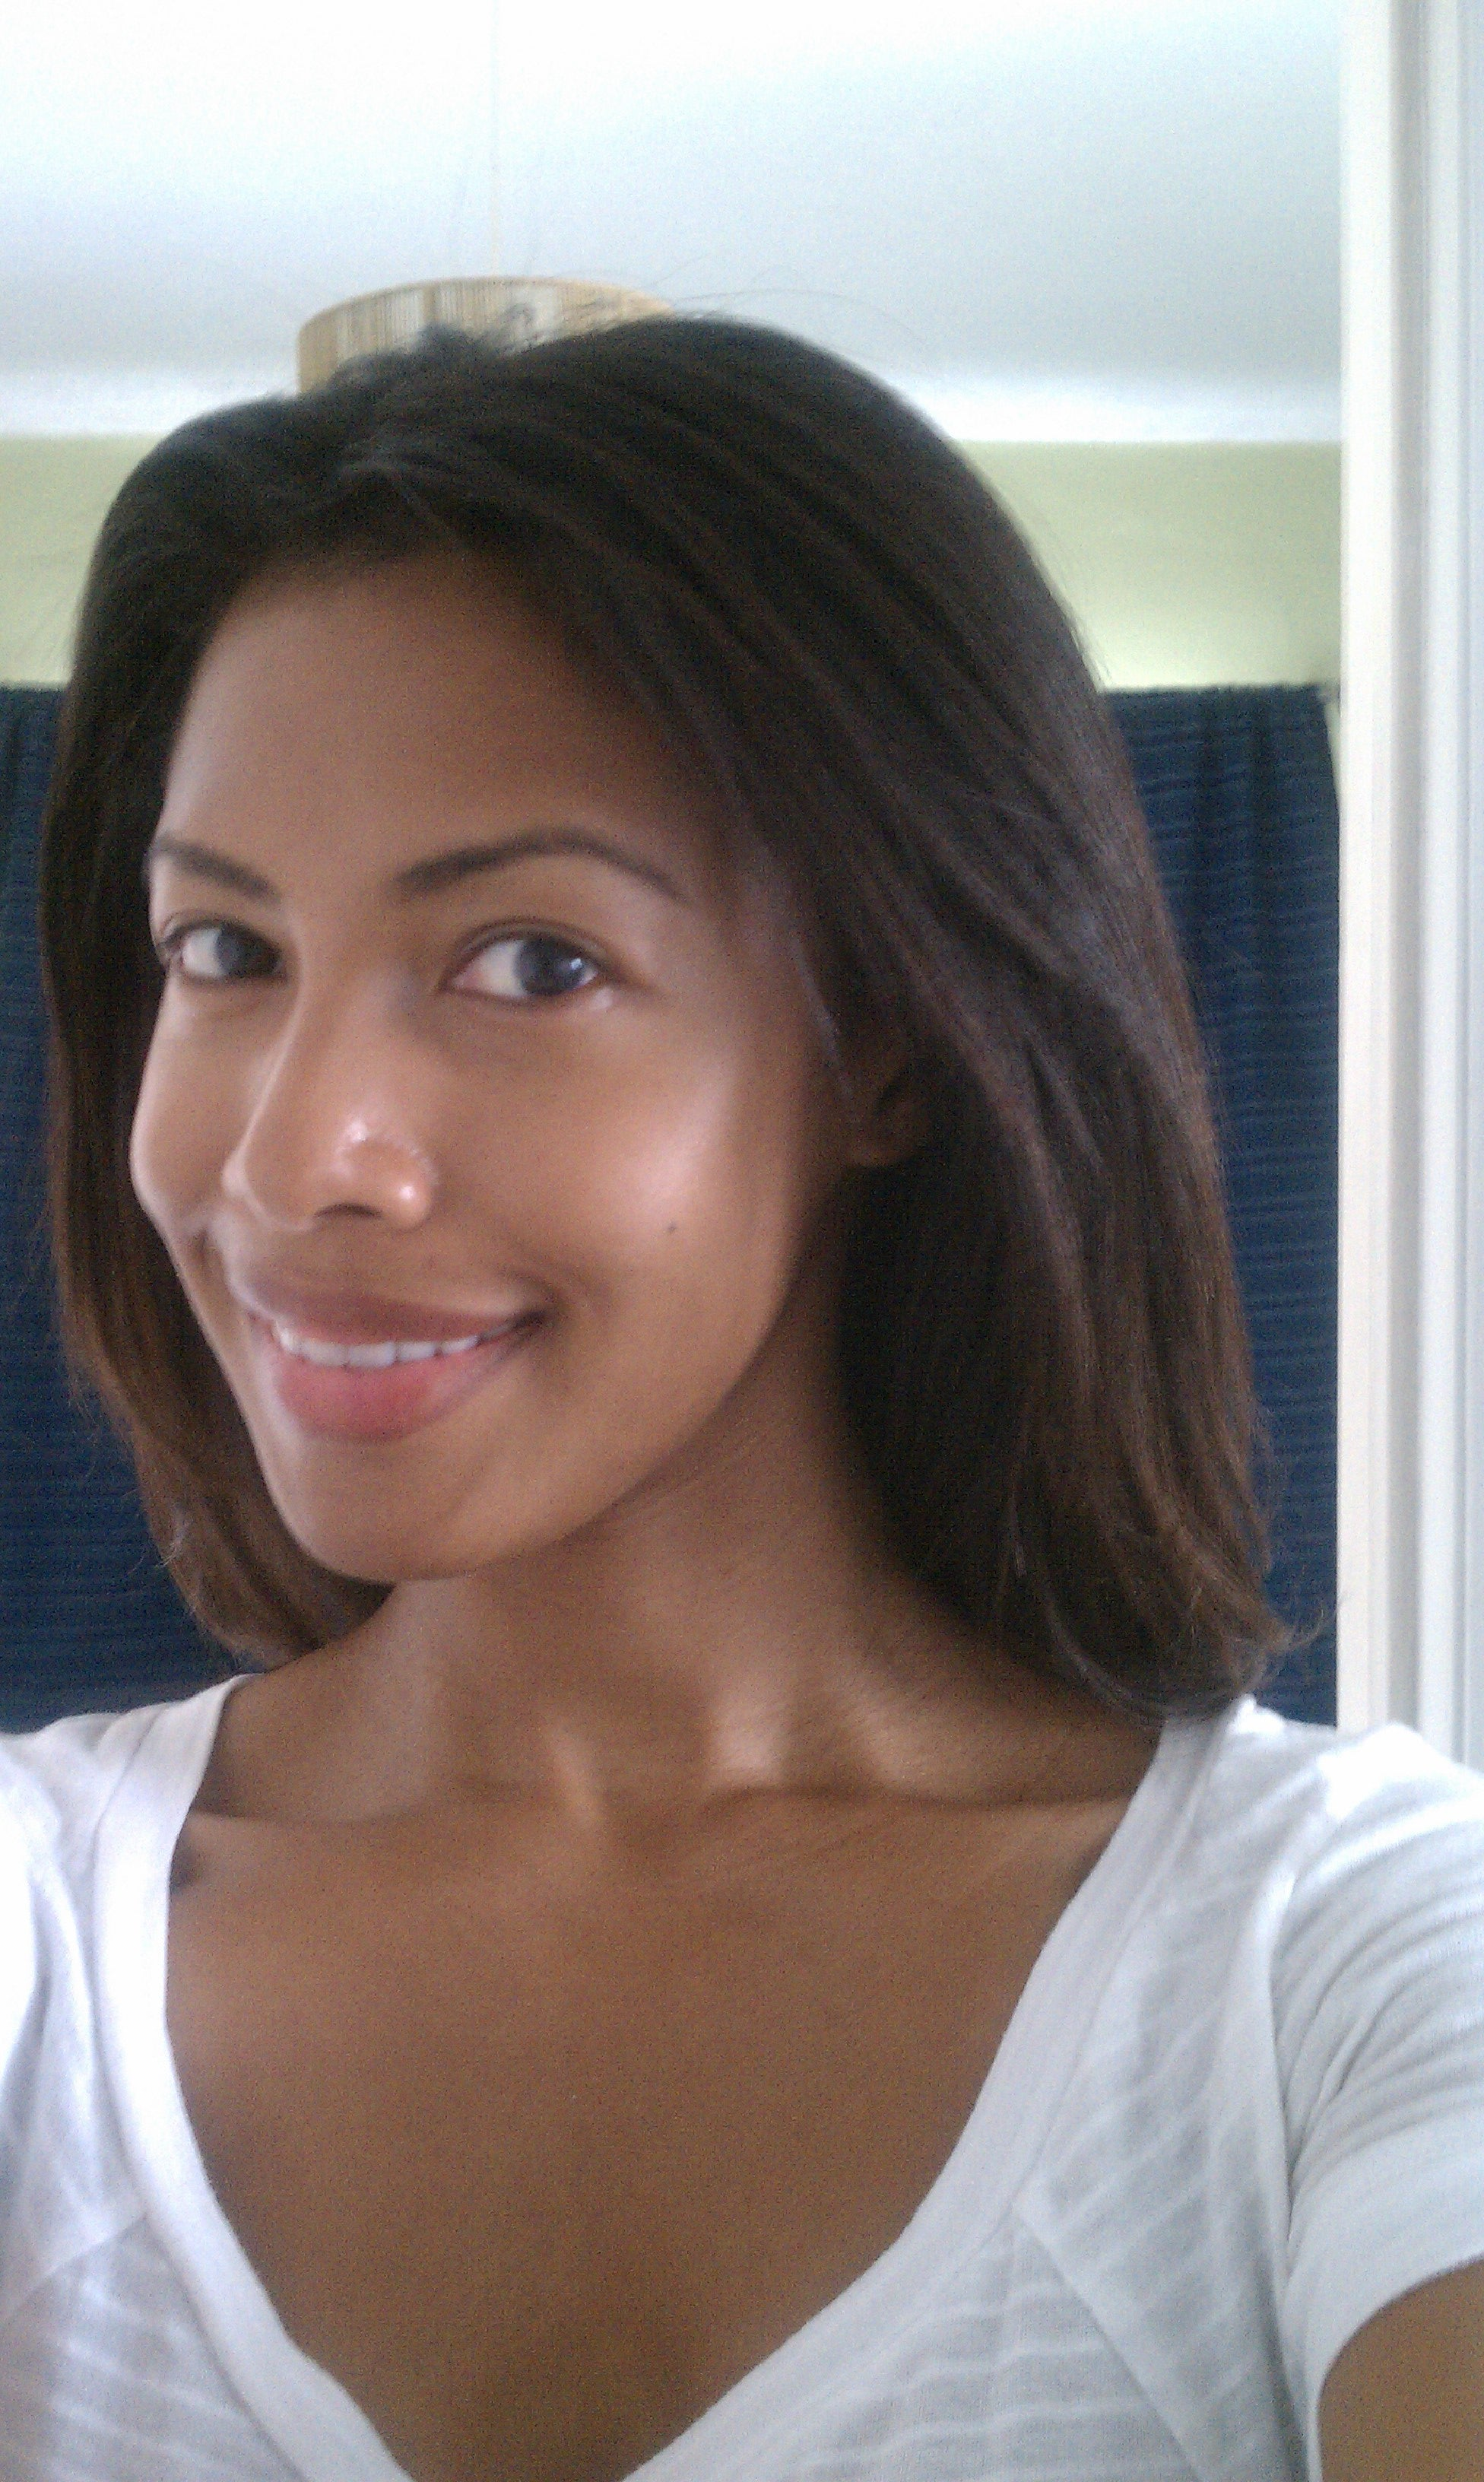 Hair after deep conditioning recipe on A GIrl's Gotta Spa! #haircare